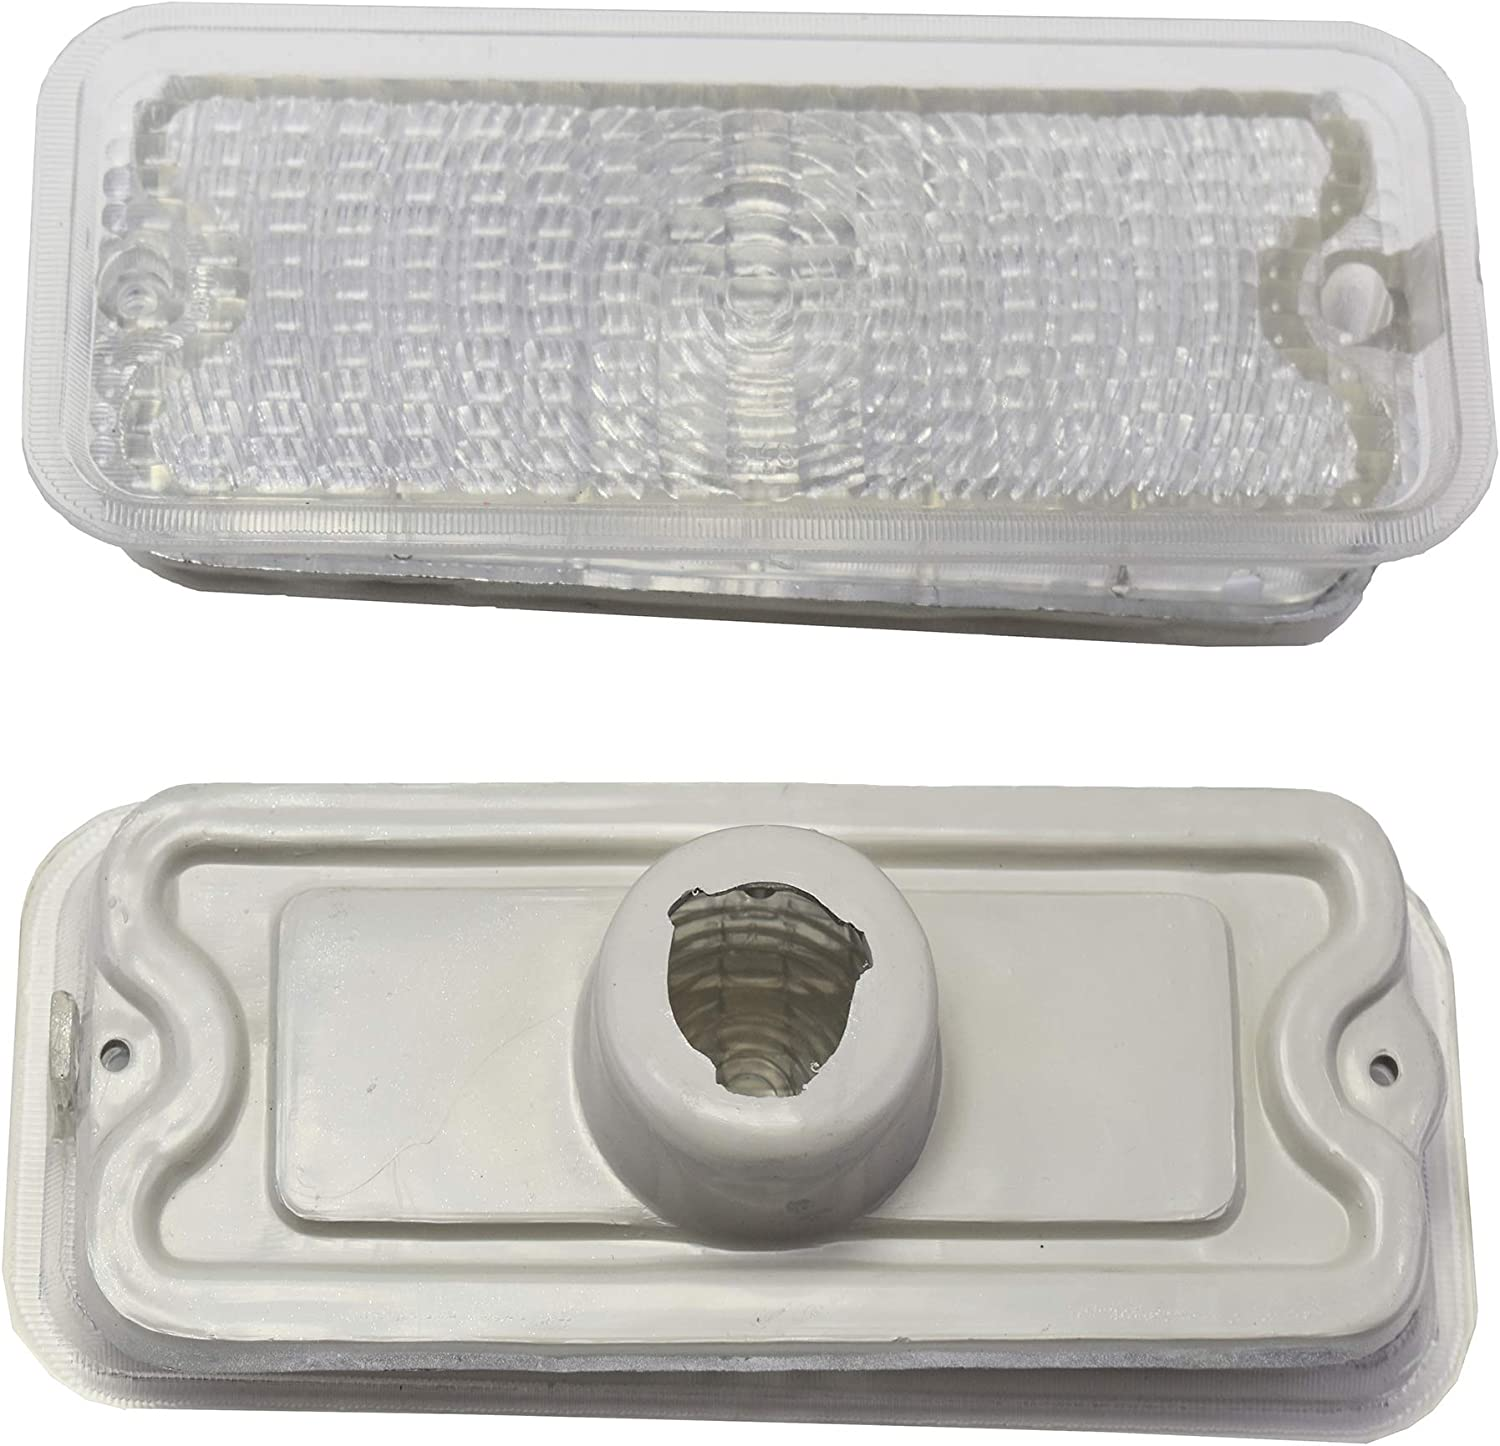 A-Team Performance C10 Park Light Lens Housing Compatible with GM 73 74 75 76 77 78 79 80 GMC Chevrolet Chevy Truck CLEAR